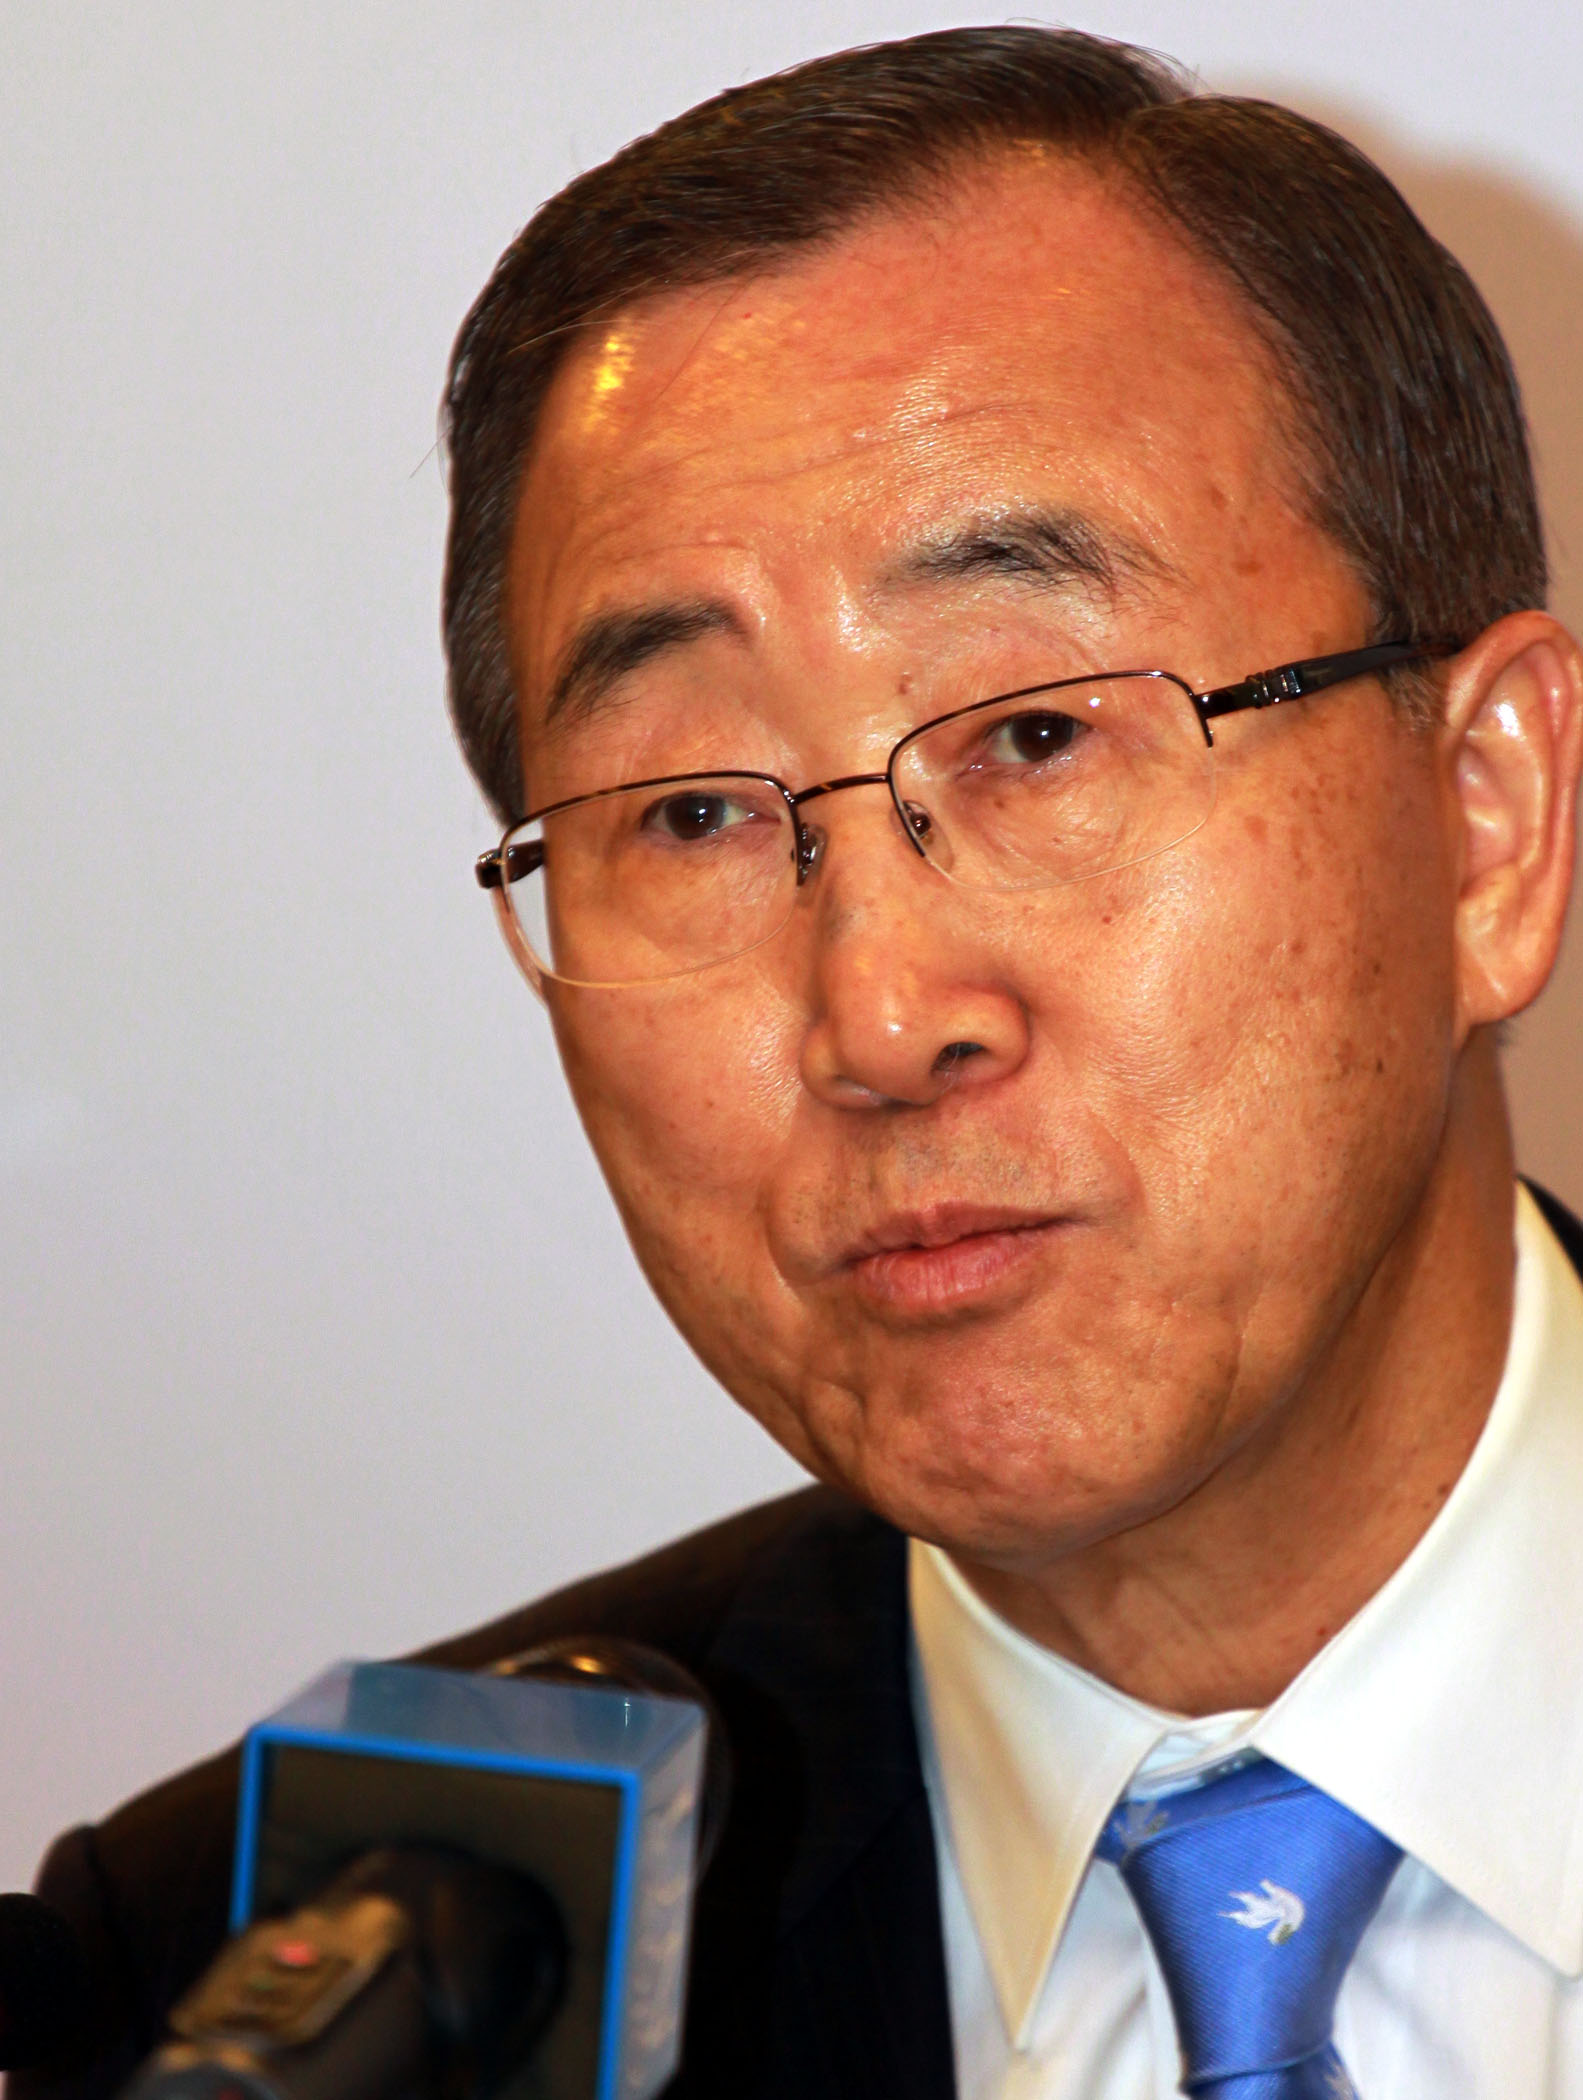 UN Secretary-General Ban Ki-moon addresses the press at the Global Forum on Migration and Development in Manila on 28 October 2008.